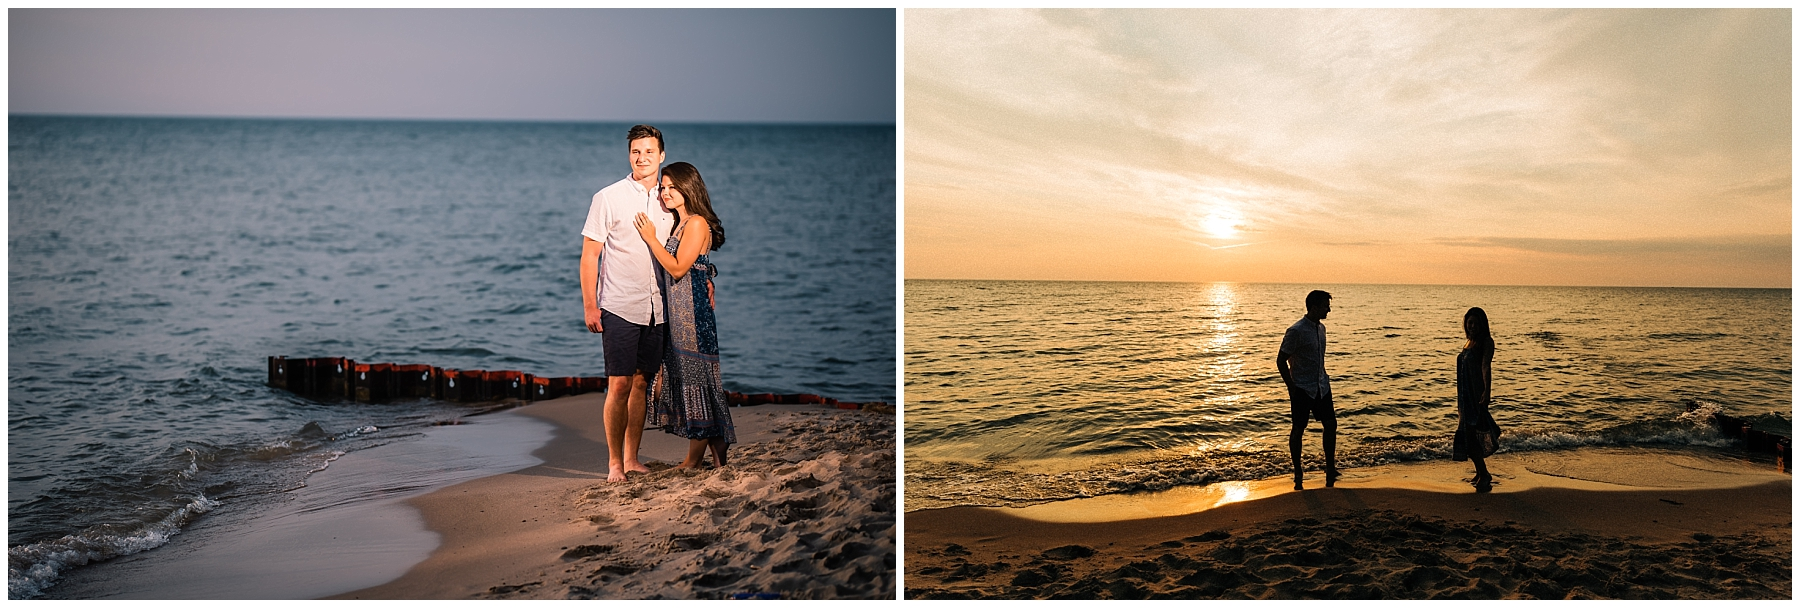 lafayette indiana engagement photography lake michigan vineyard winery wedding photographer elopement destination wedding (45).jpg